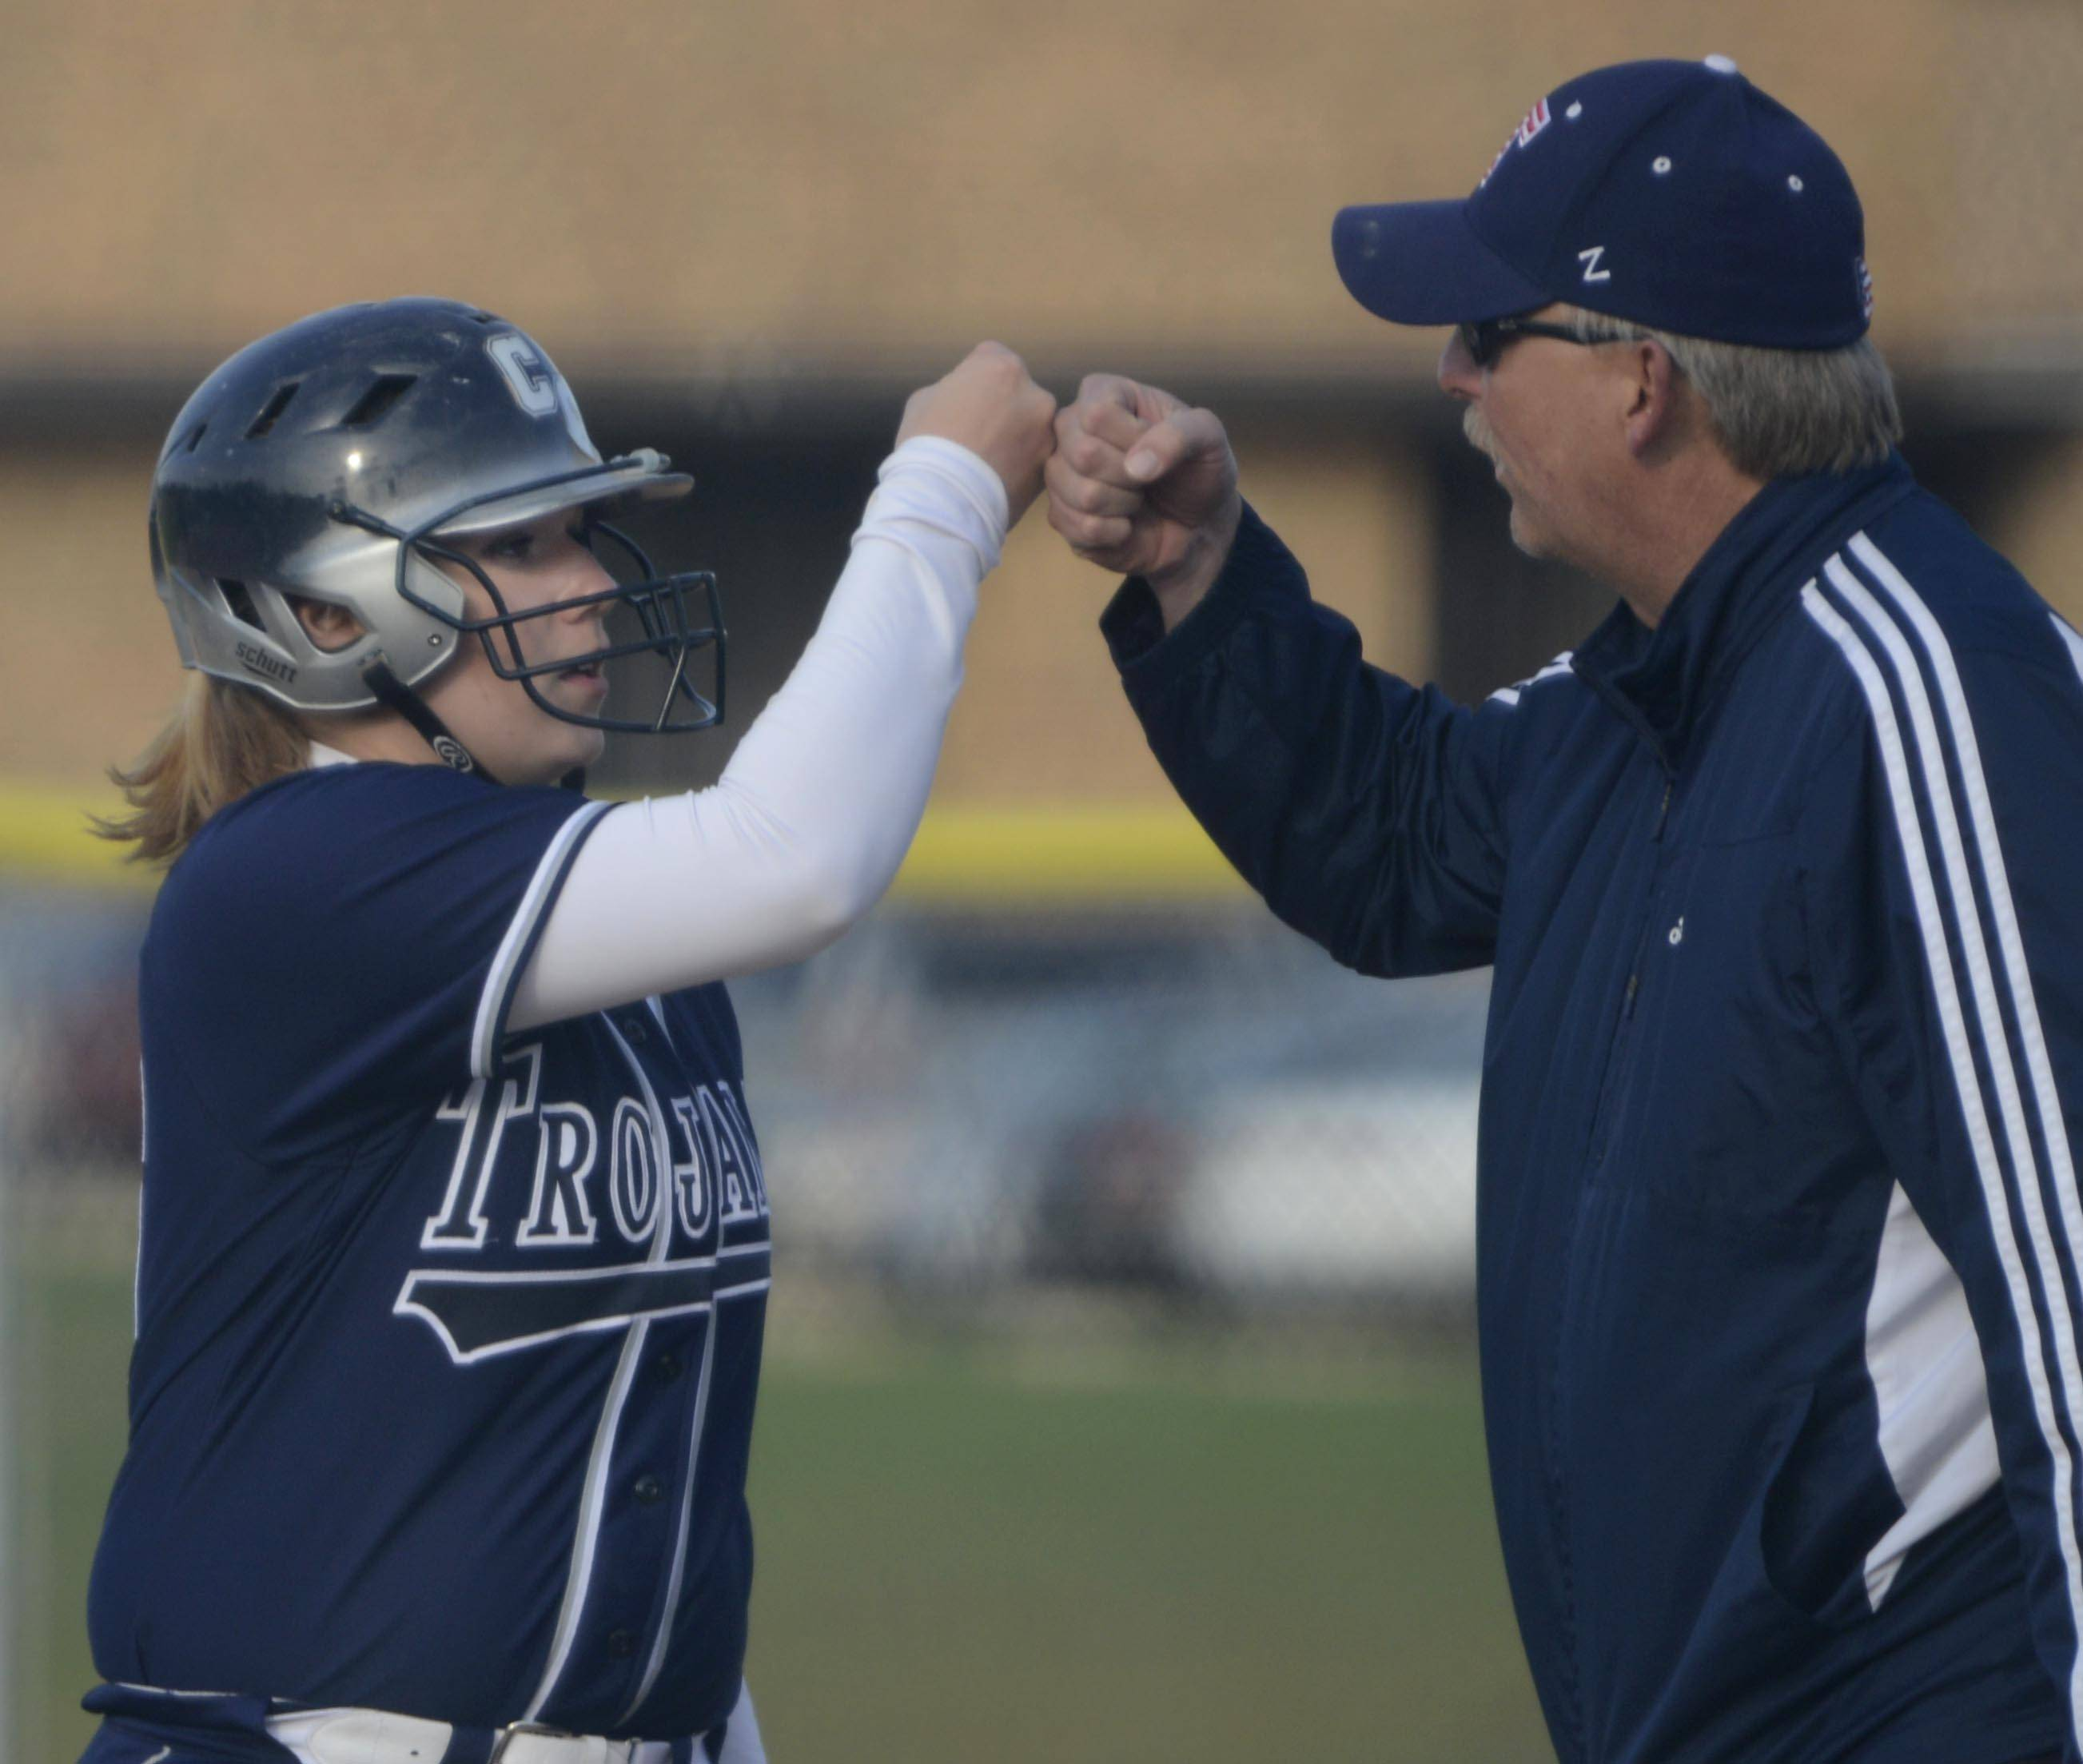 Cary-Grove's Amanda DeGroote is congratulated on her two RBI base hit against Jacobs in the fifth inning by assistant coach Mark Olson Tuesday in Cary.